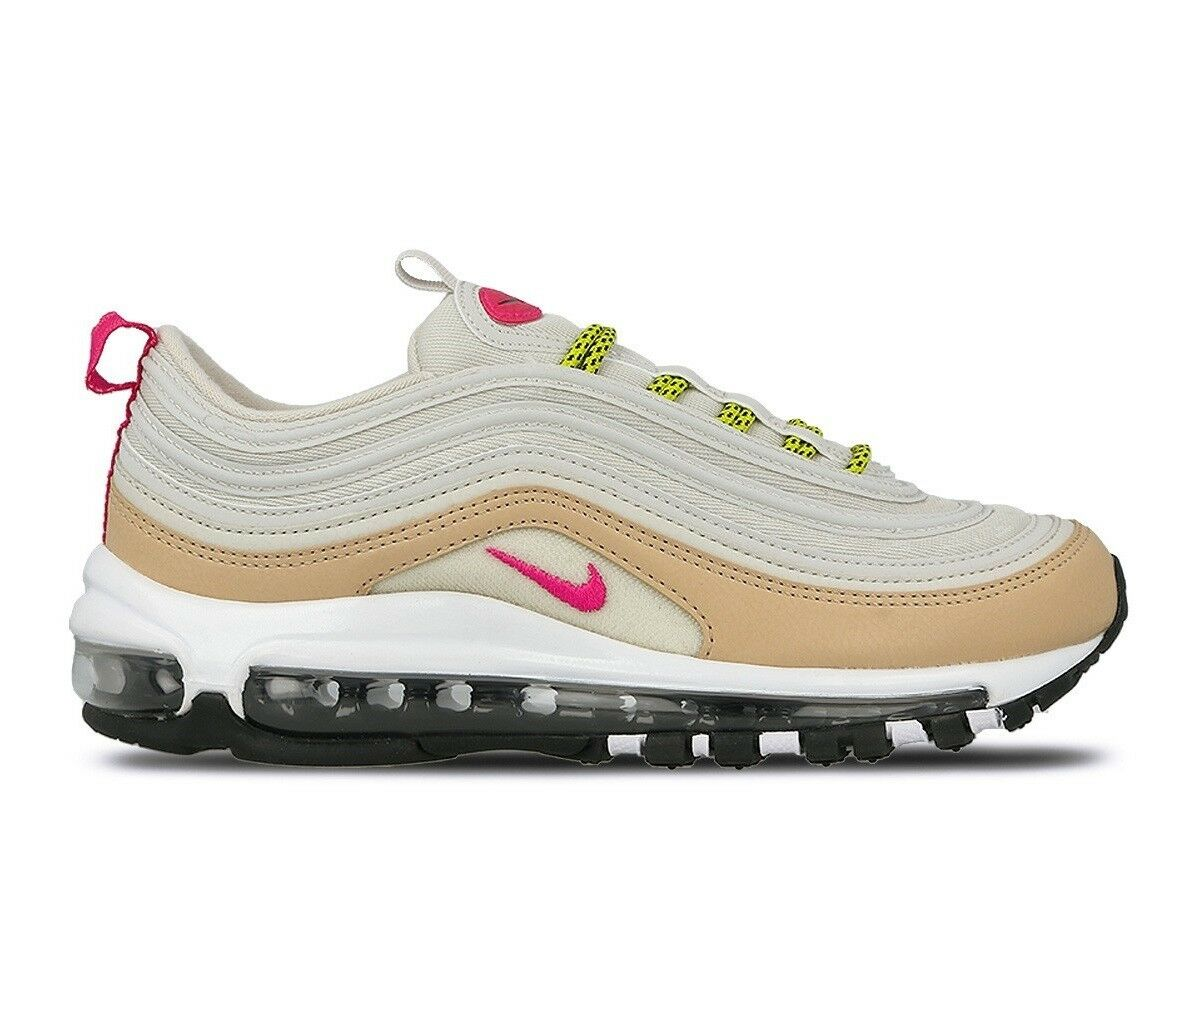 Nike Wmns Air Max 97 Light Bone Deadly Pink 921733-004 Size 7 UK